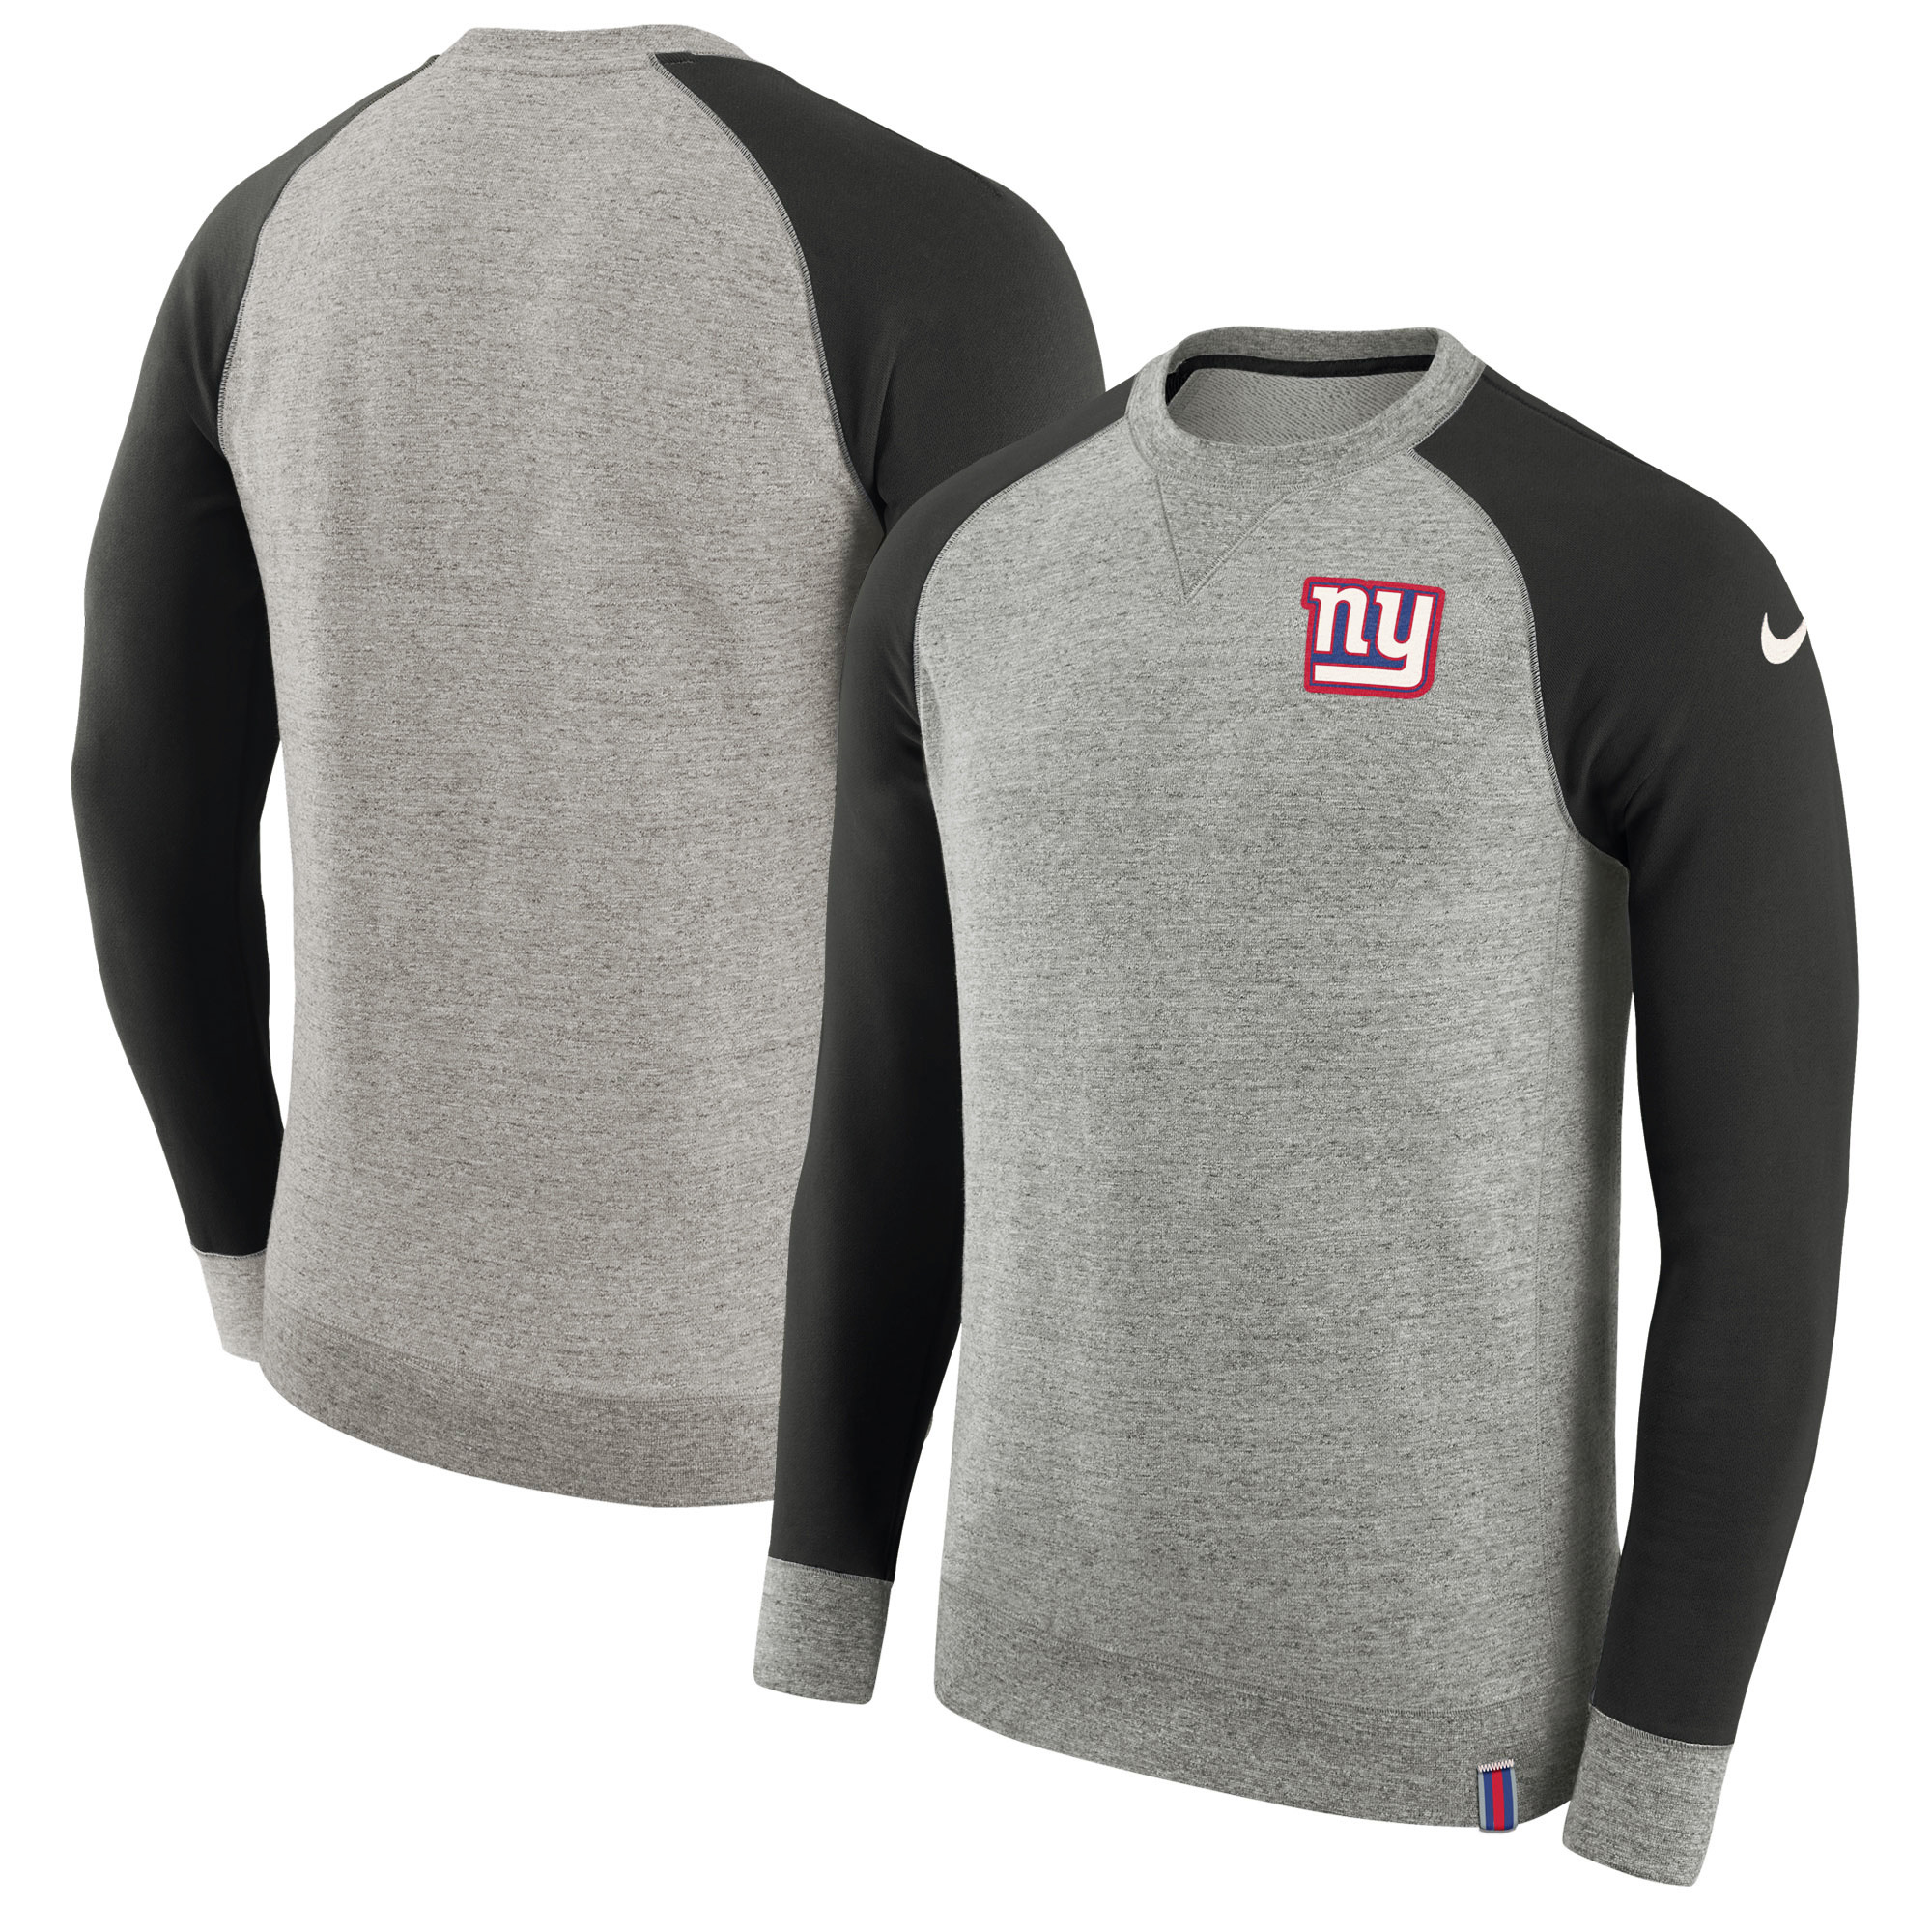 New York Giants Nike AW77 French Terry Pullover Sweatshirt - Heathered Gray/Charcoal